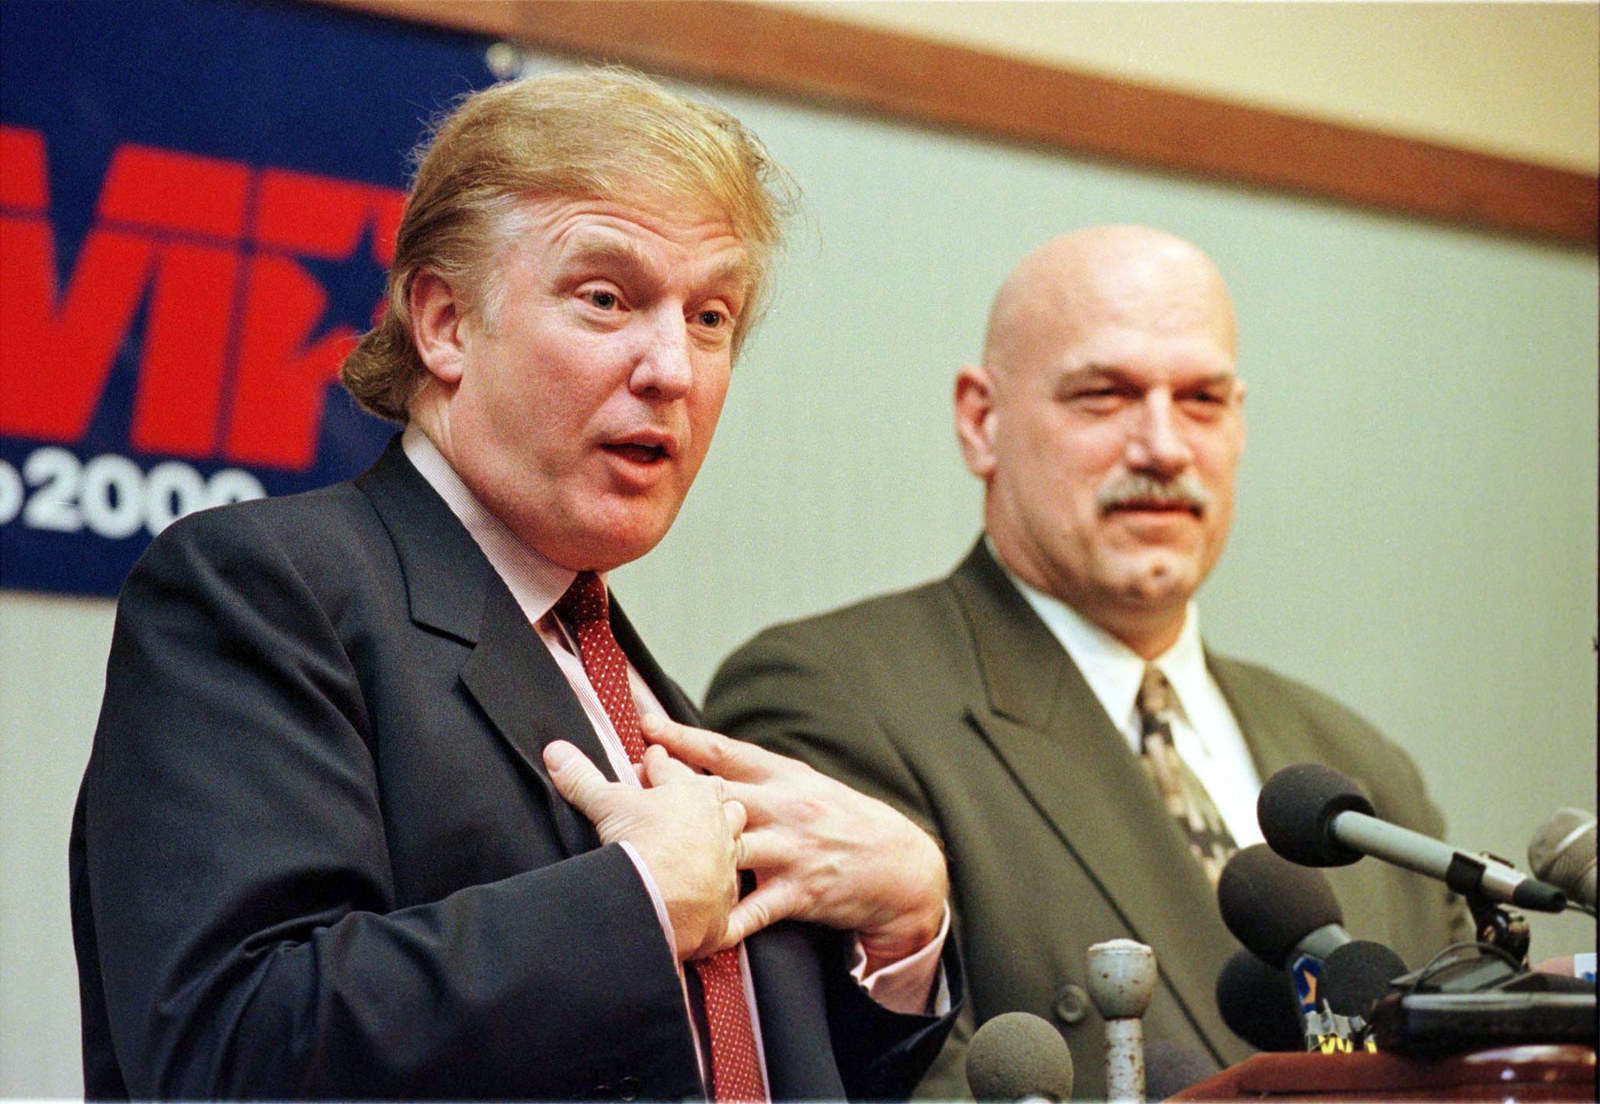 Donald Trump Showed His Hand In 1999, But No One Was Looking